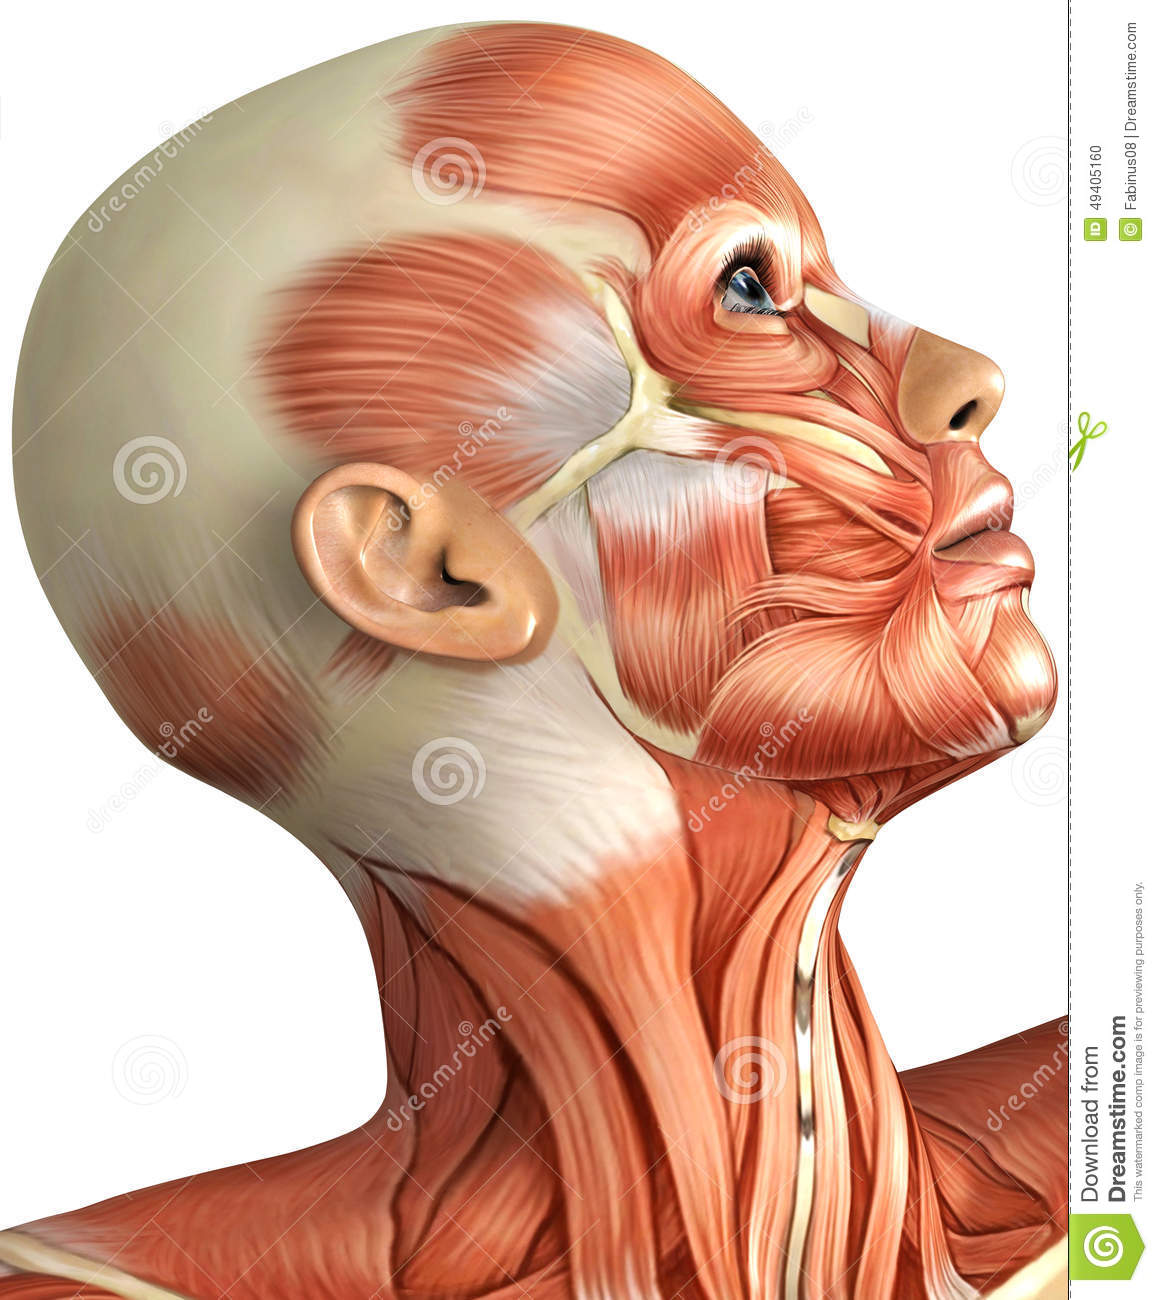 Anatomy Of Female Head Stock Illustration  Illustration Of